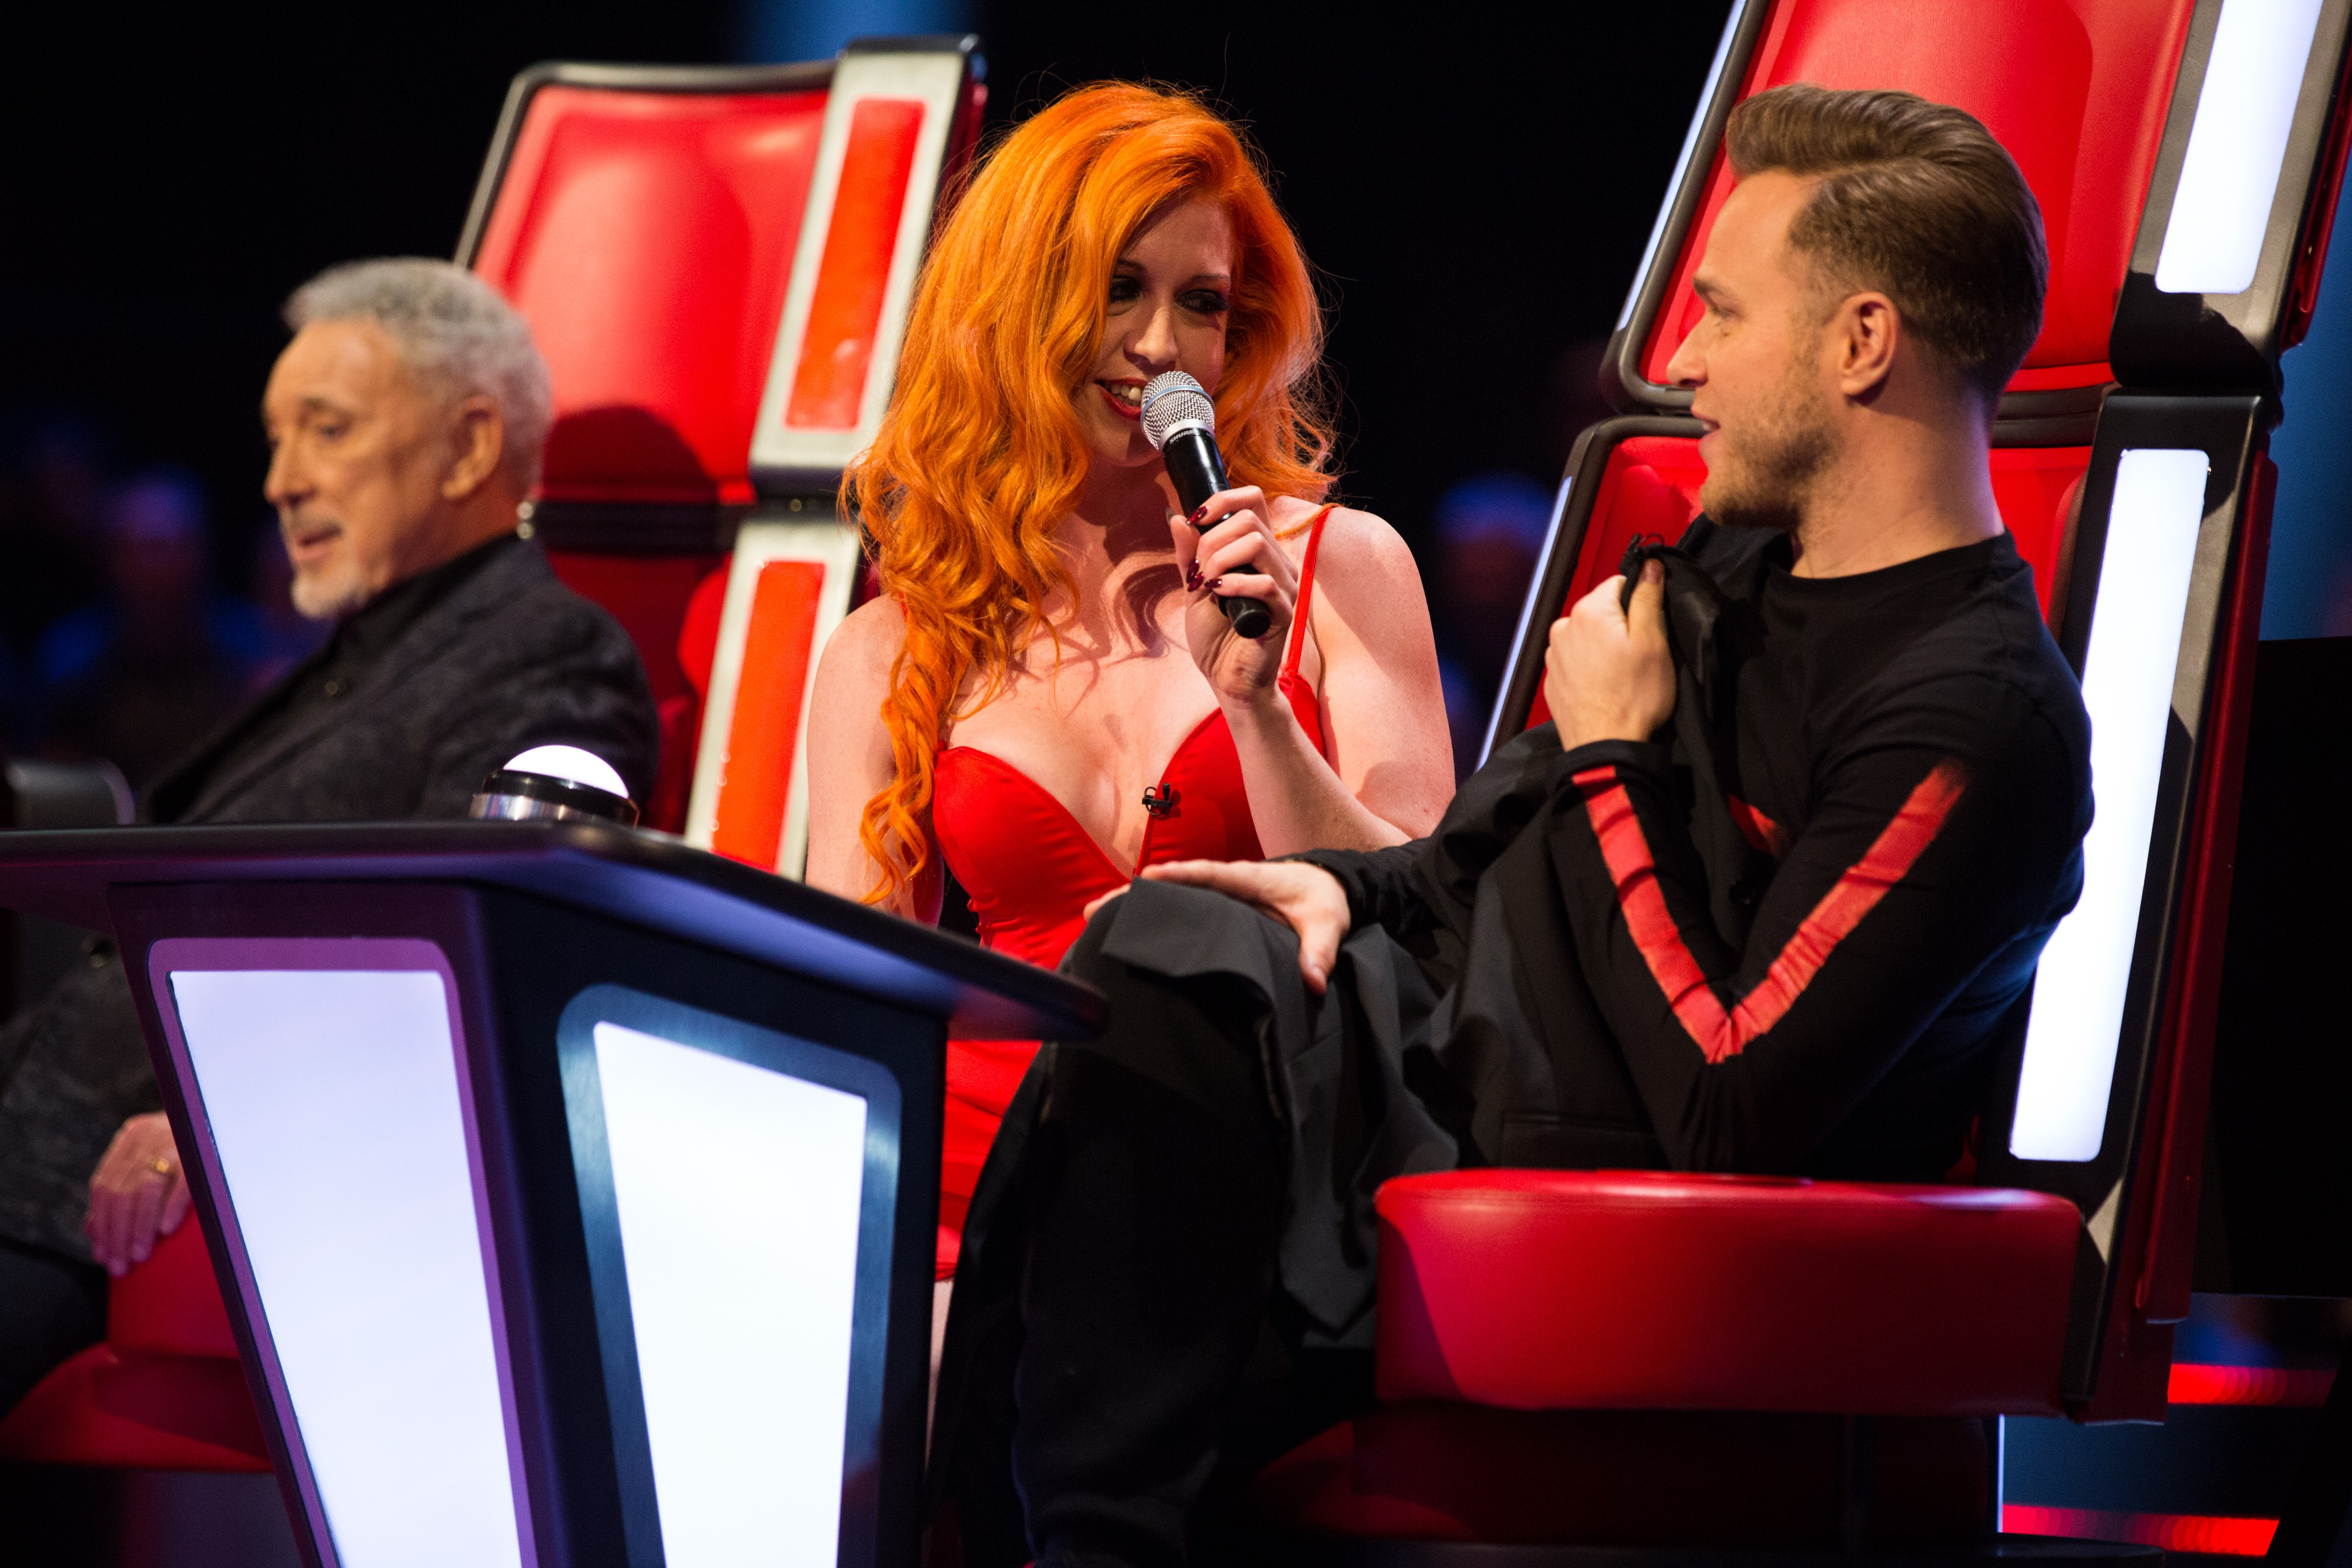 Ivy Paige and Olly Murs on The Voice UK